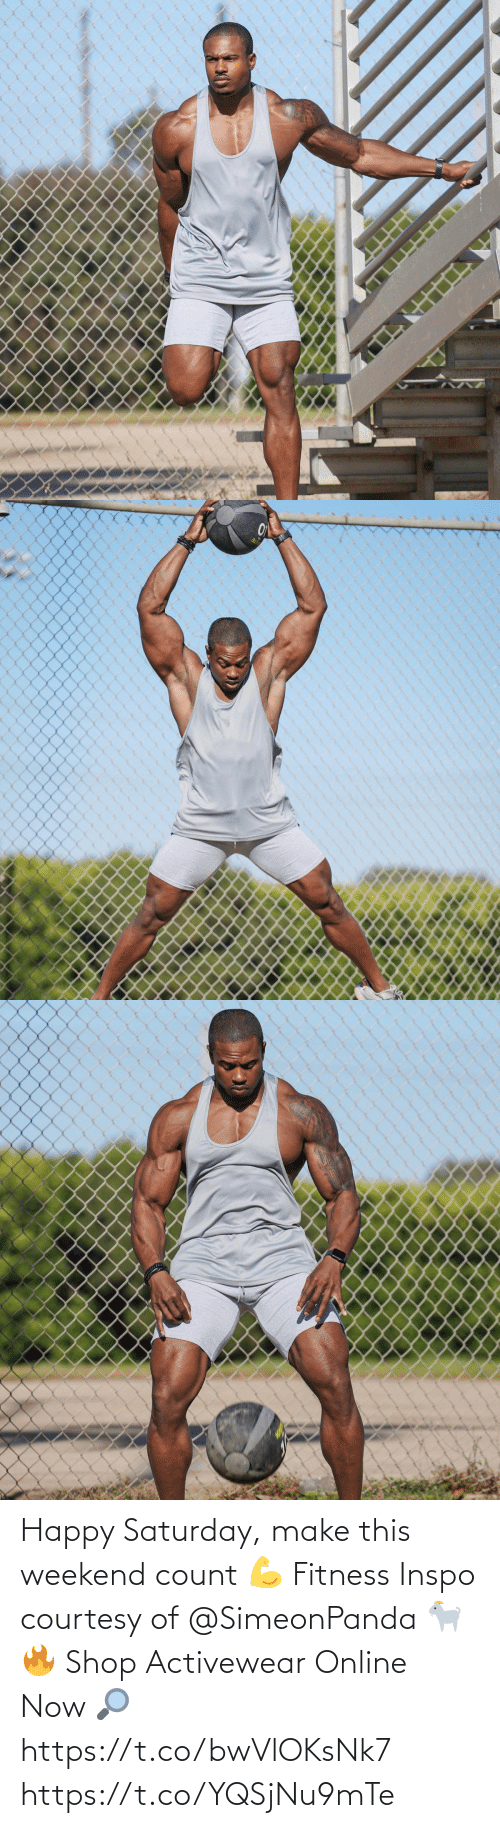 Memes, Happy, and Fitness: Happy Saturday, make this weekend count 💪  Fitness Inspo courtesy of @SimeonPanda 🐐🔥  Shop Activewear Online Now 🔎 https://t.co/bwVlOKsNk7 https://t.co/YQSjNu9mTe